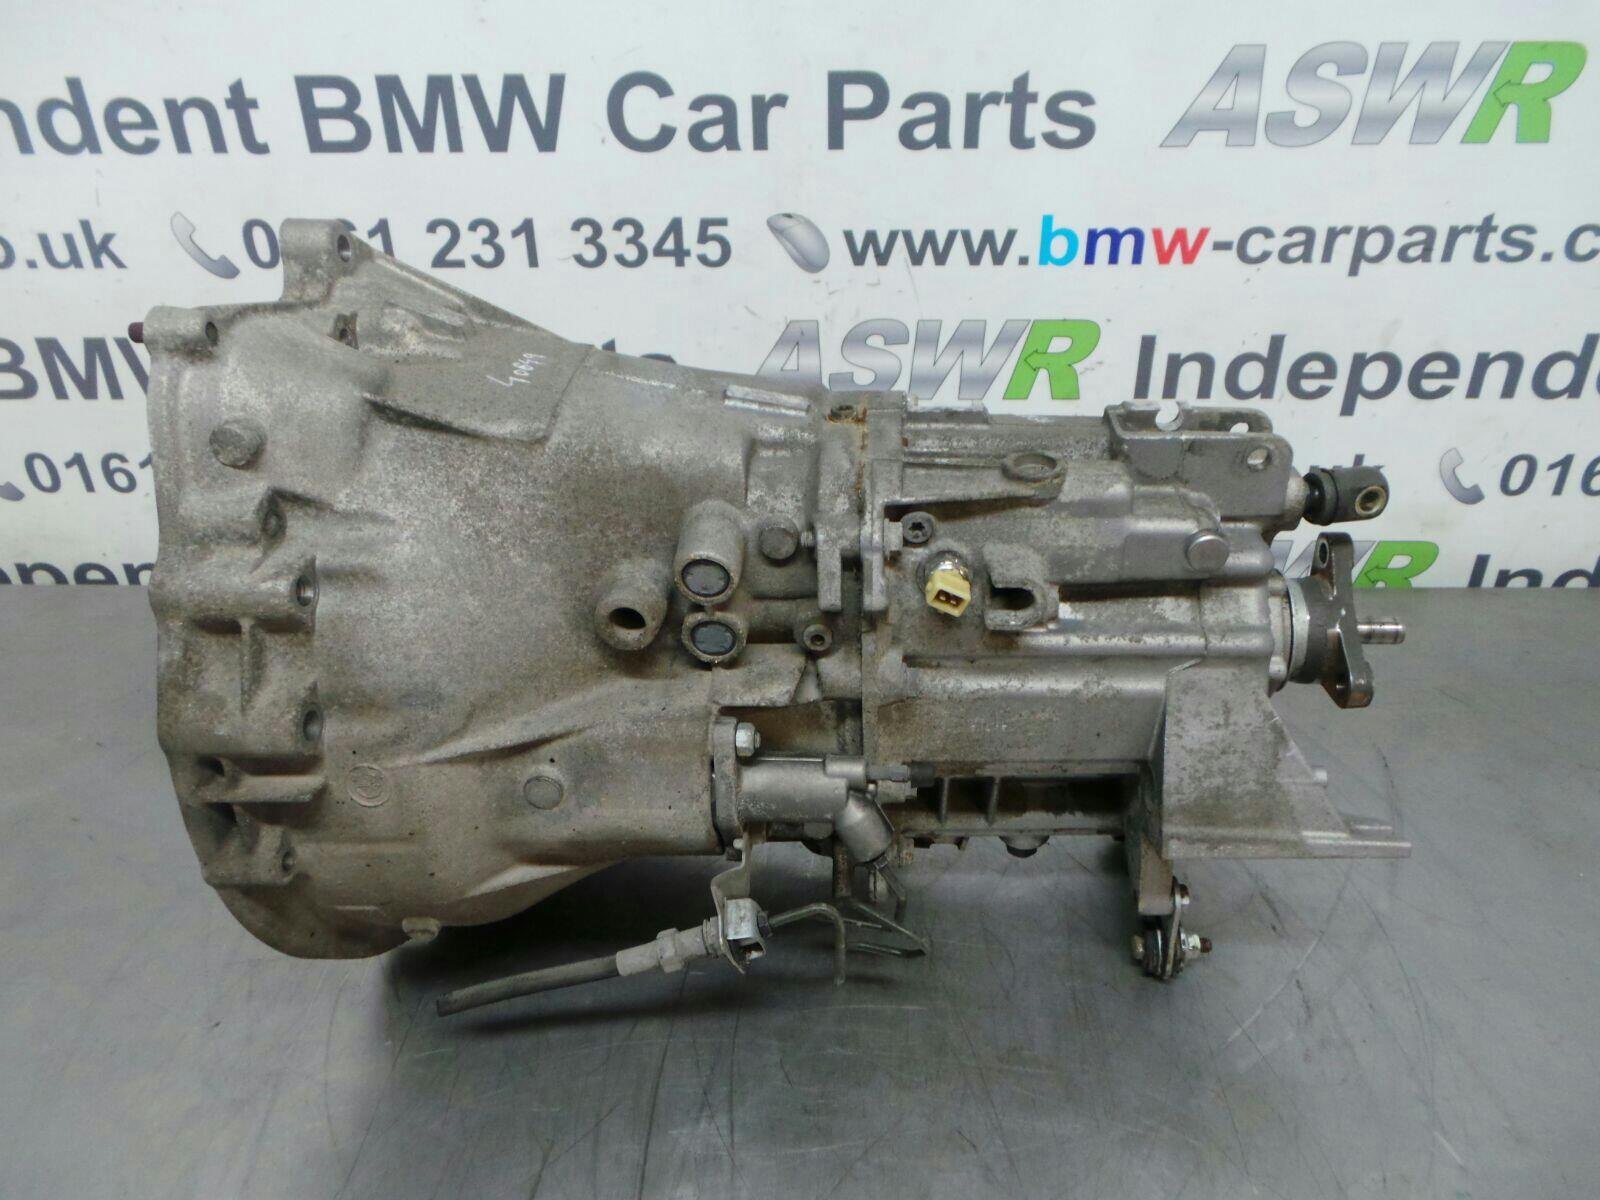 BMW E46 3 SERIES Manual Gearbox 23007534457 breaking for